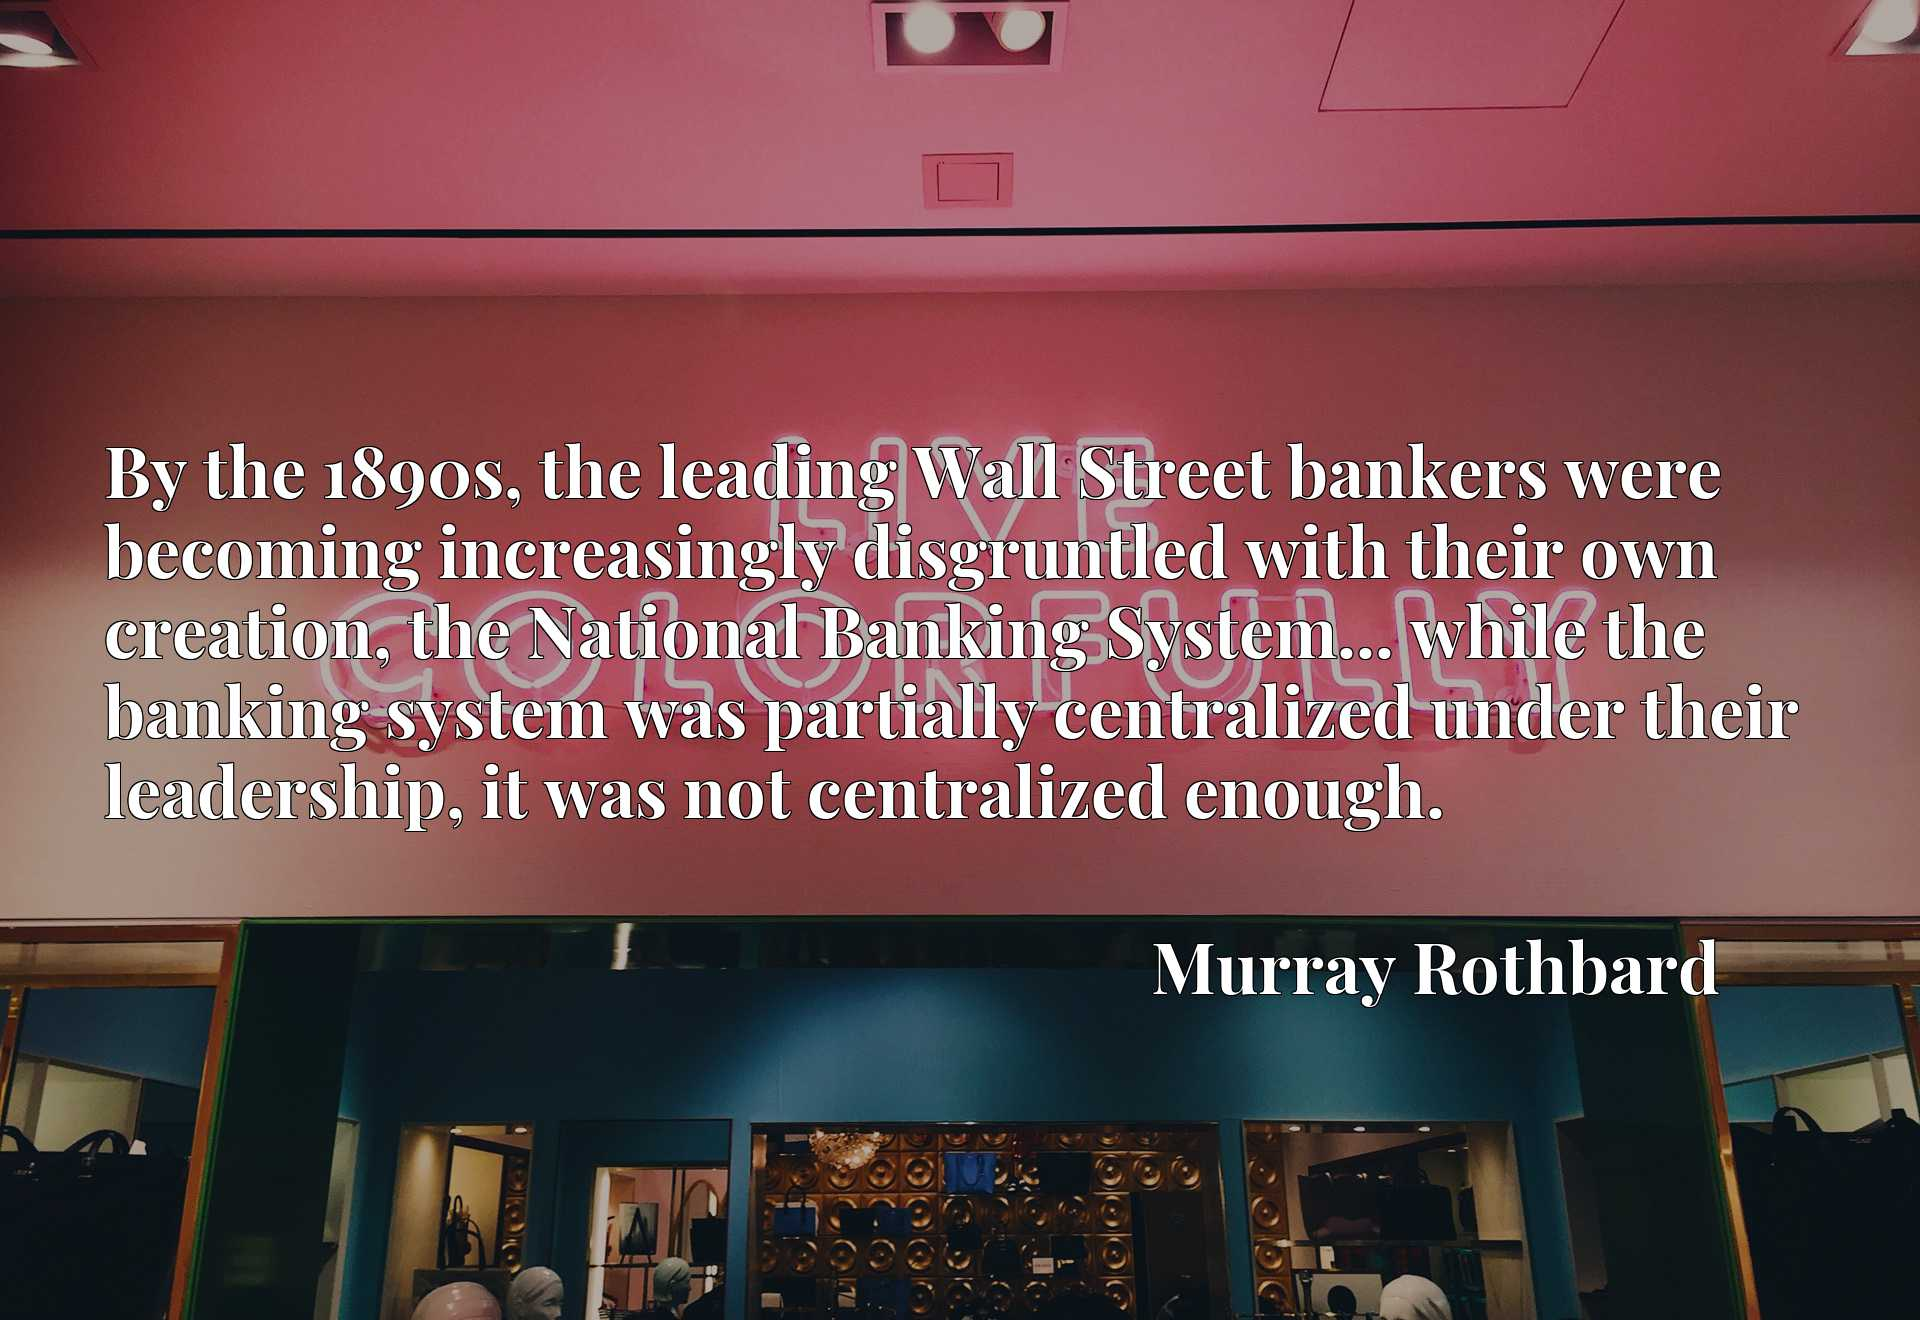 By the 1890s, the leading Wall Street bankers were becoming increasingly disgruntled with their own creation, the National Banking System... while the banking system was partially centralized under their leadership, it was not centralized enough.